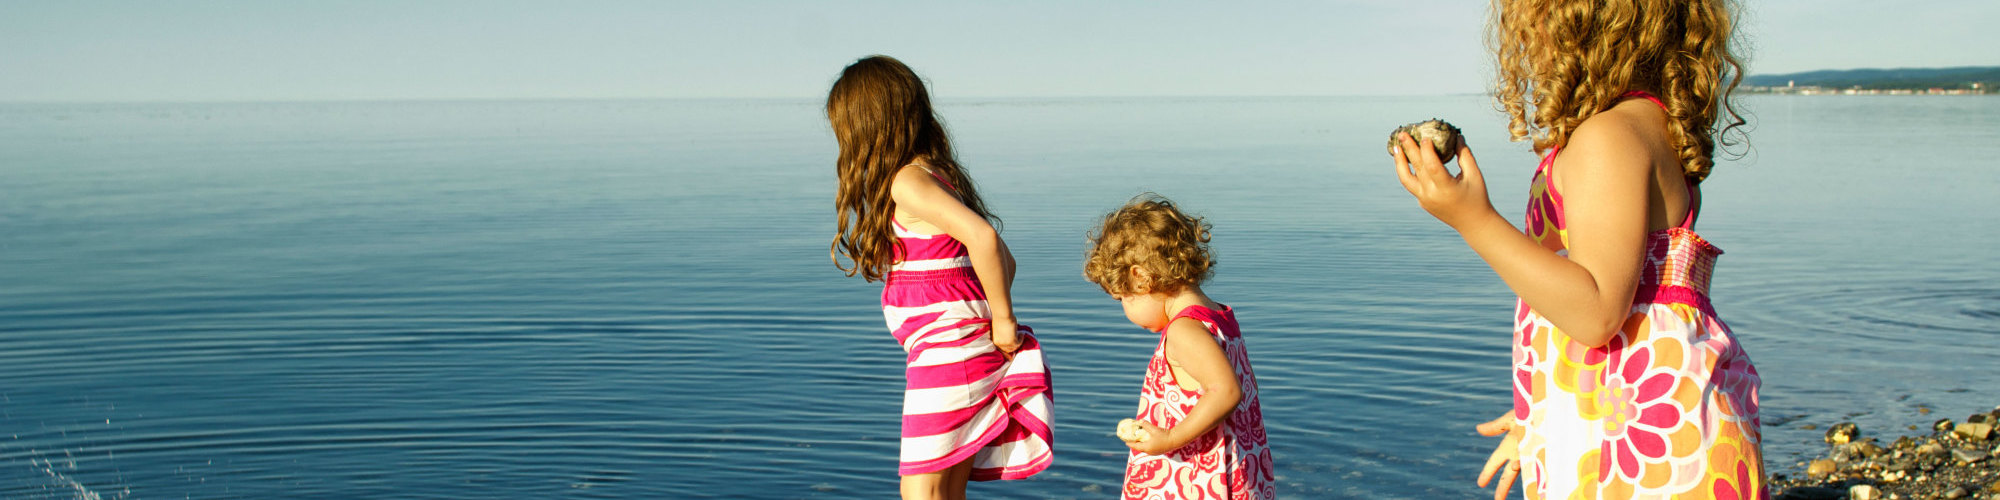 3 little girls playing in the water on the beach